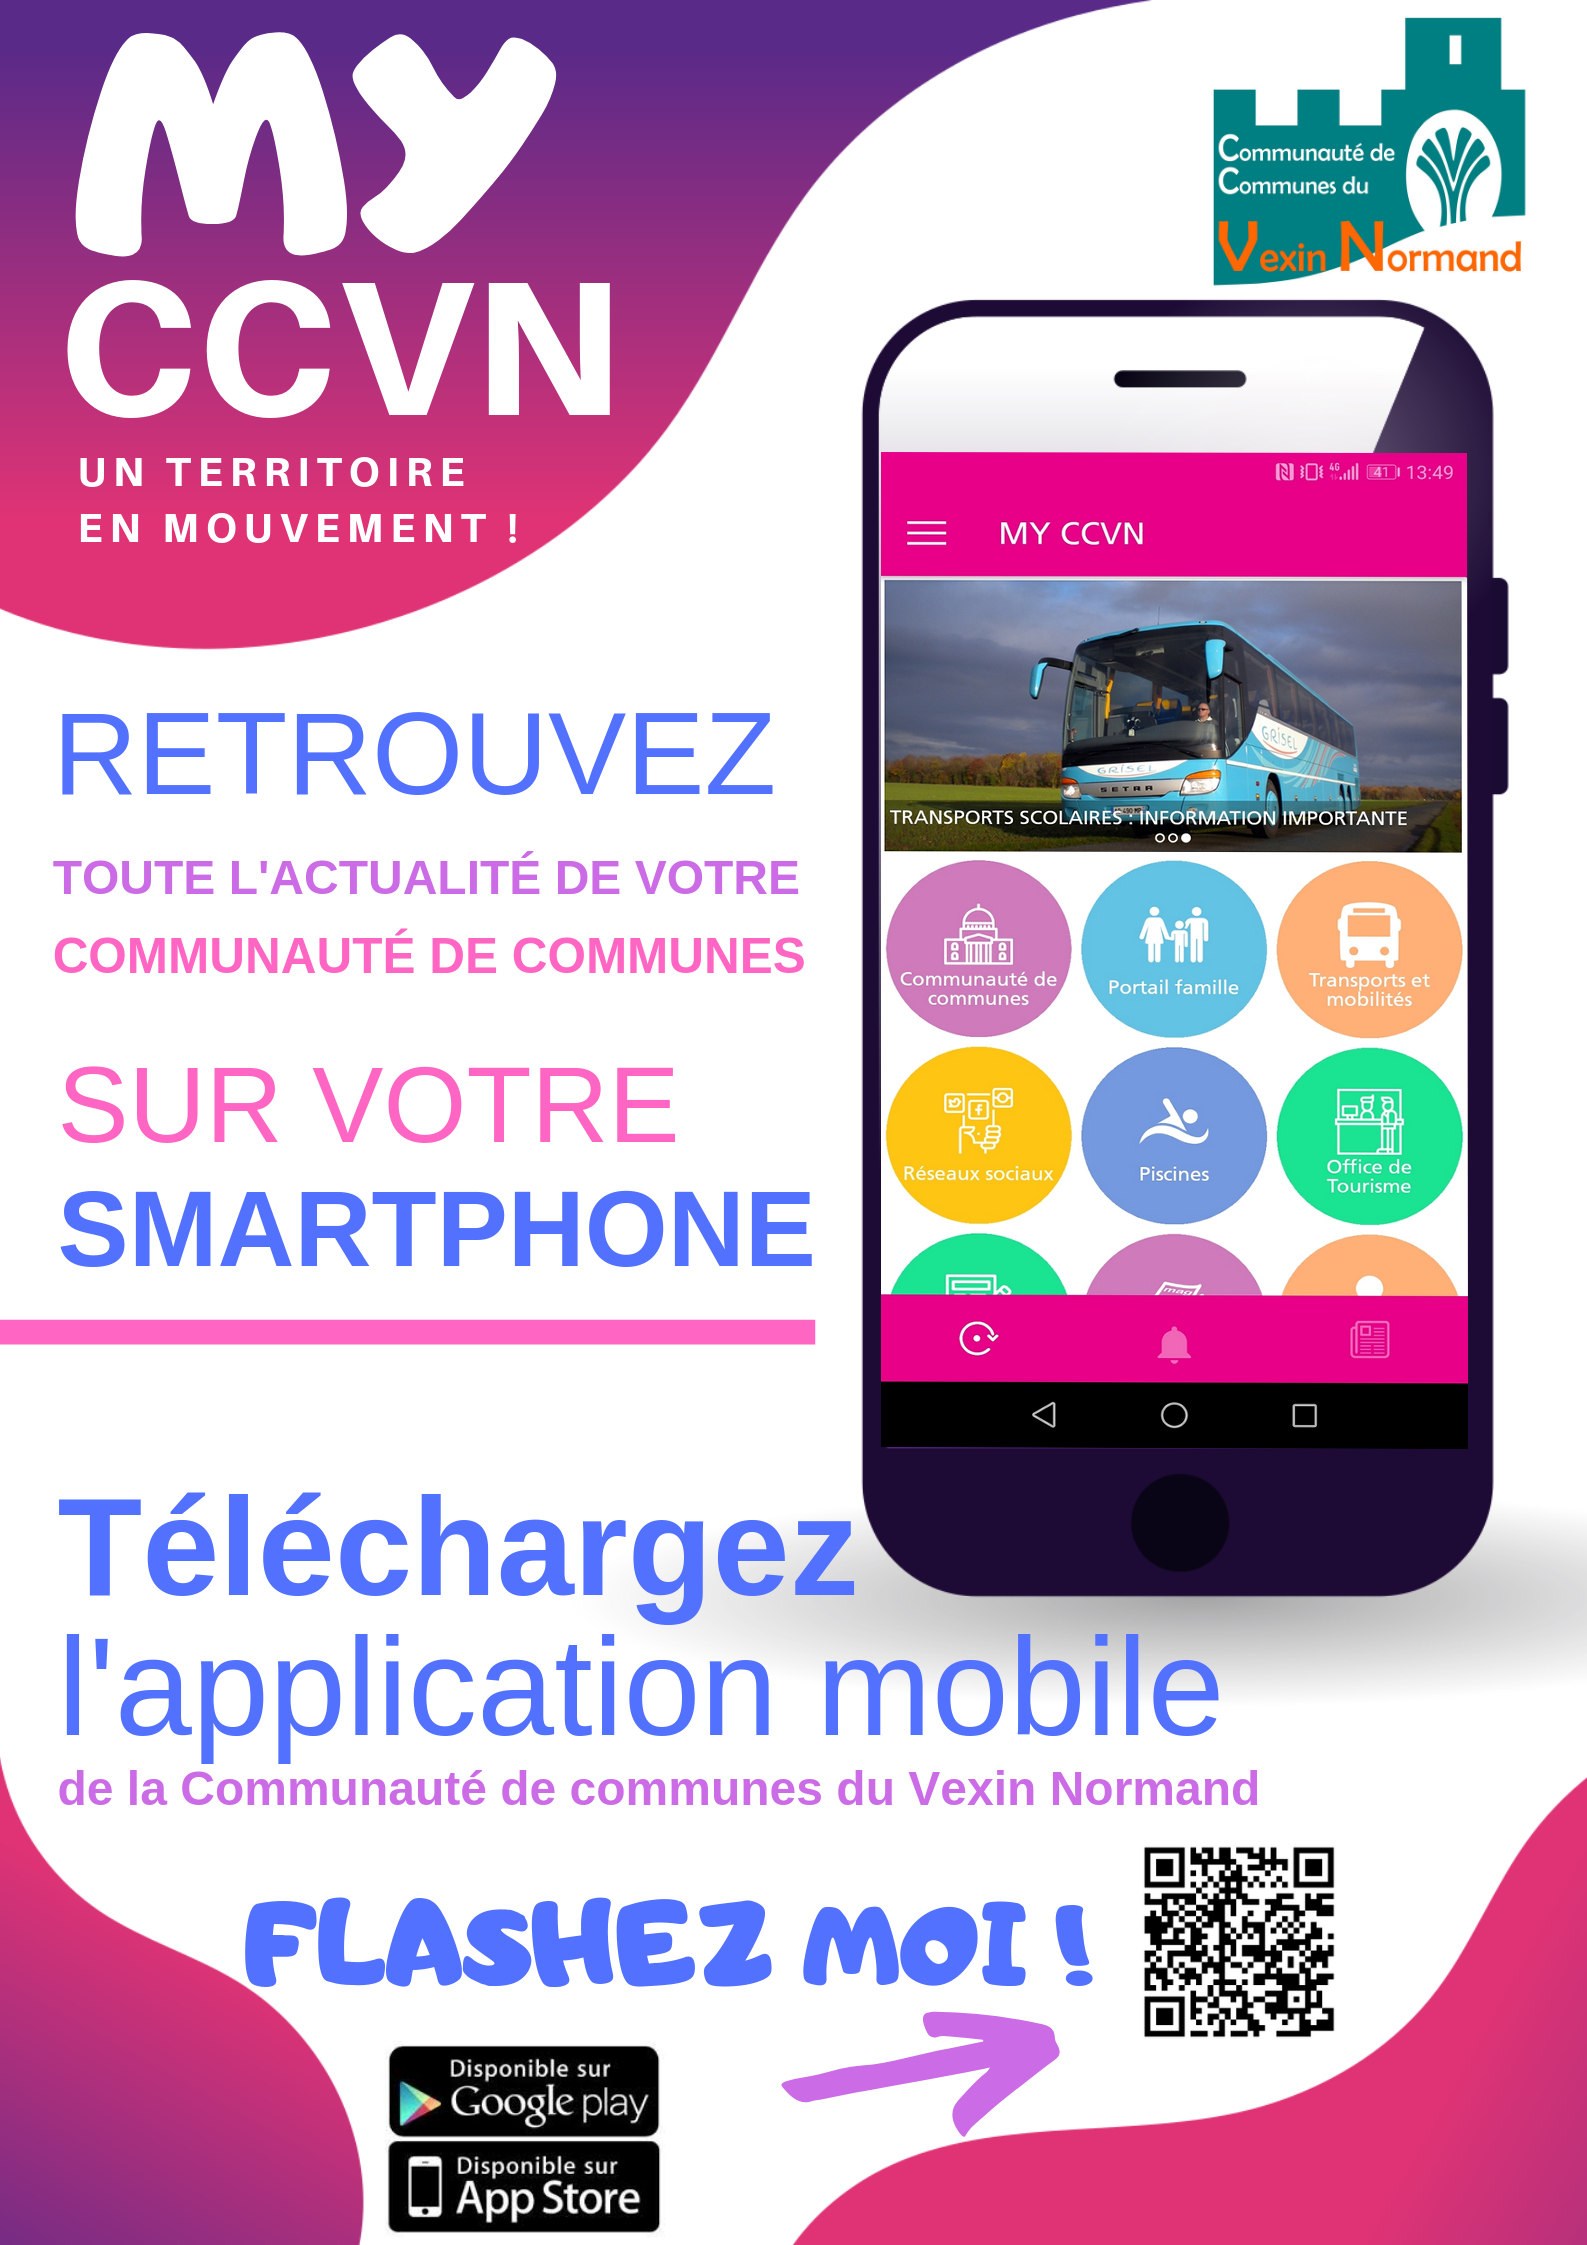 MY CCVN L'application mobile de la Communauté de communes du Vexin Normand est lancée !